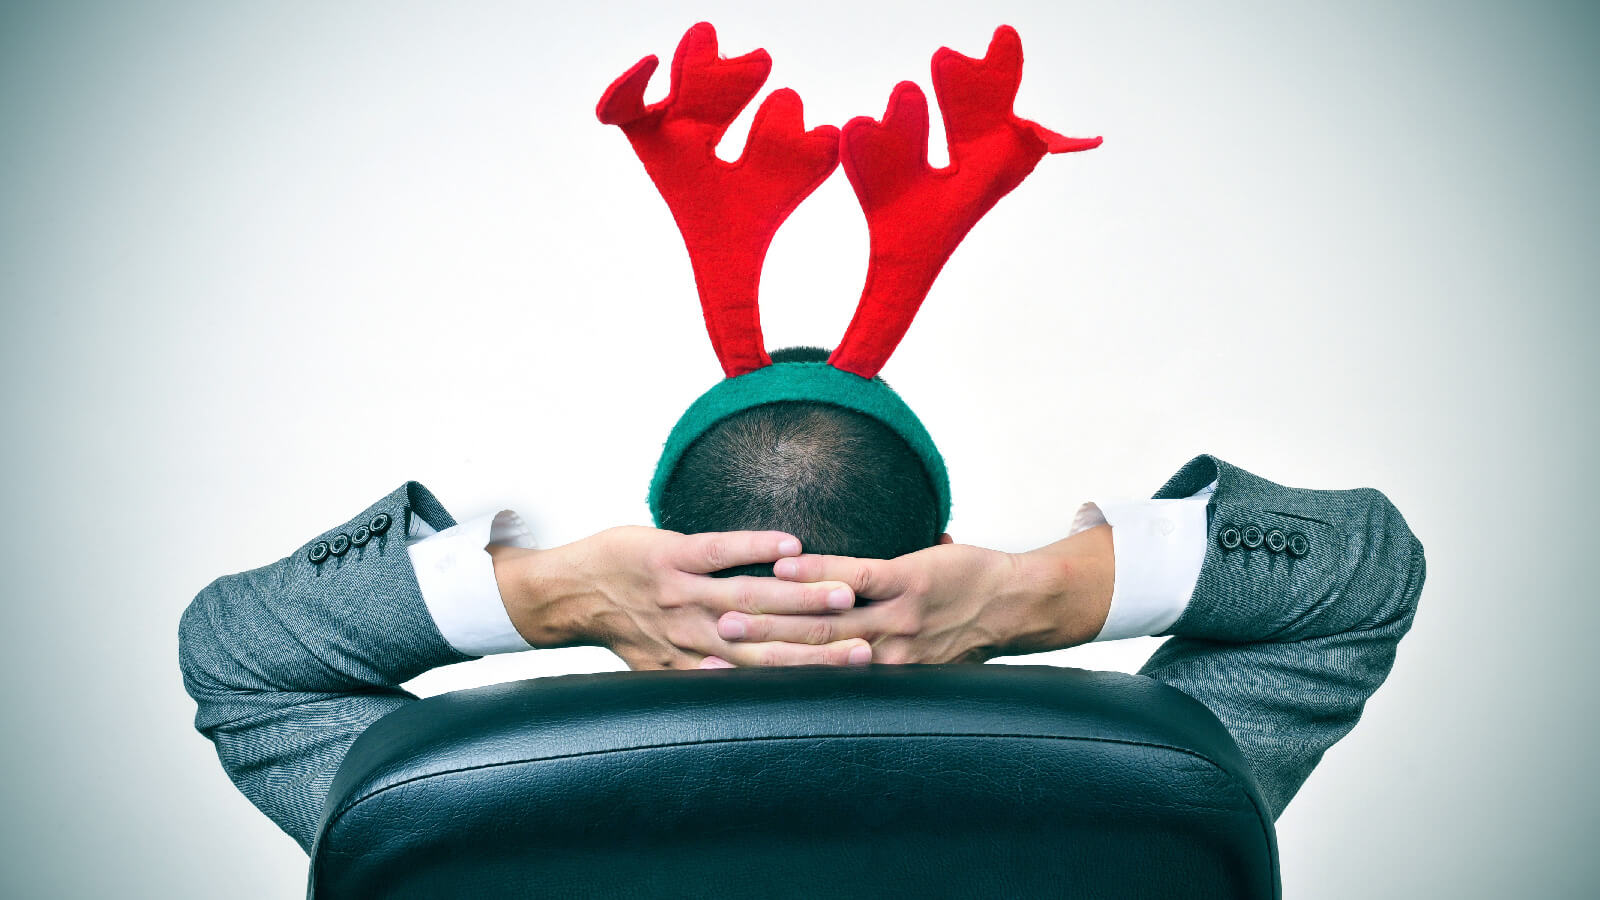 jobs in demand during the holiday season